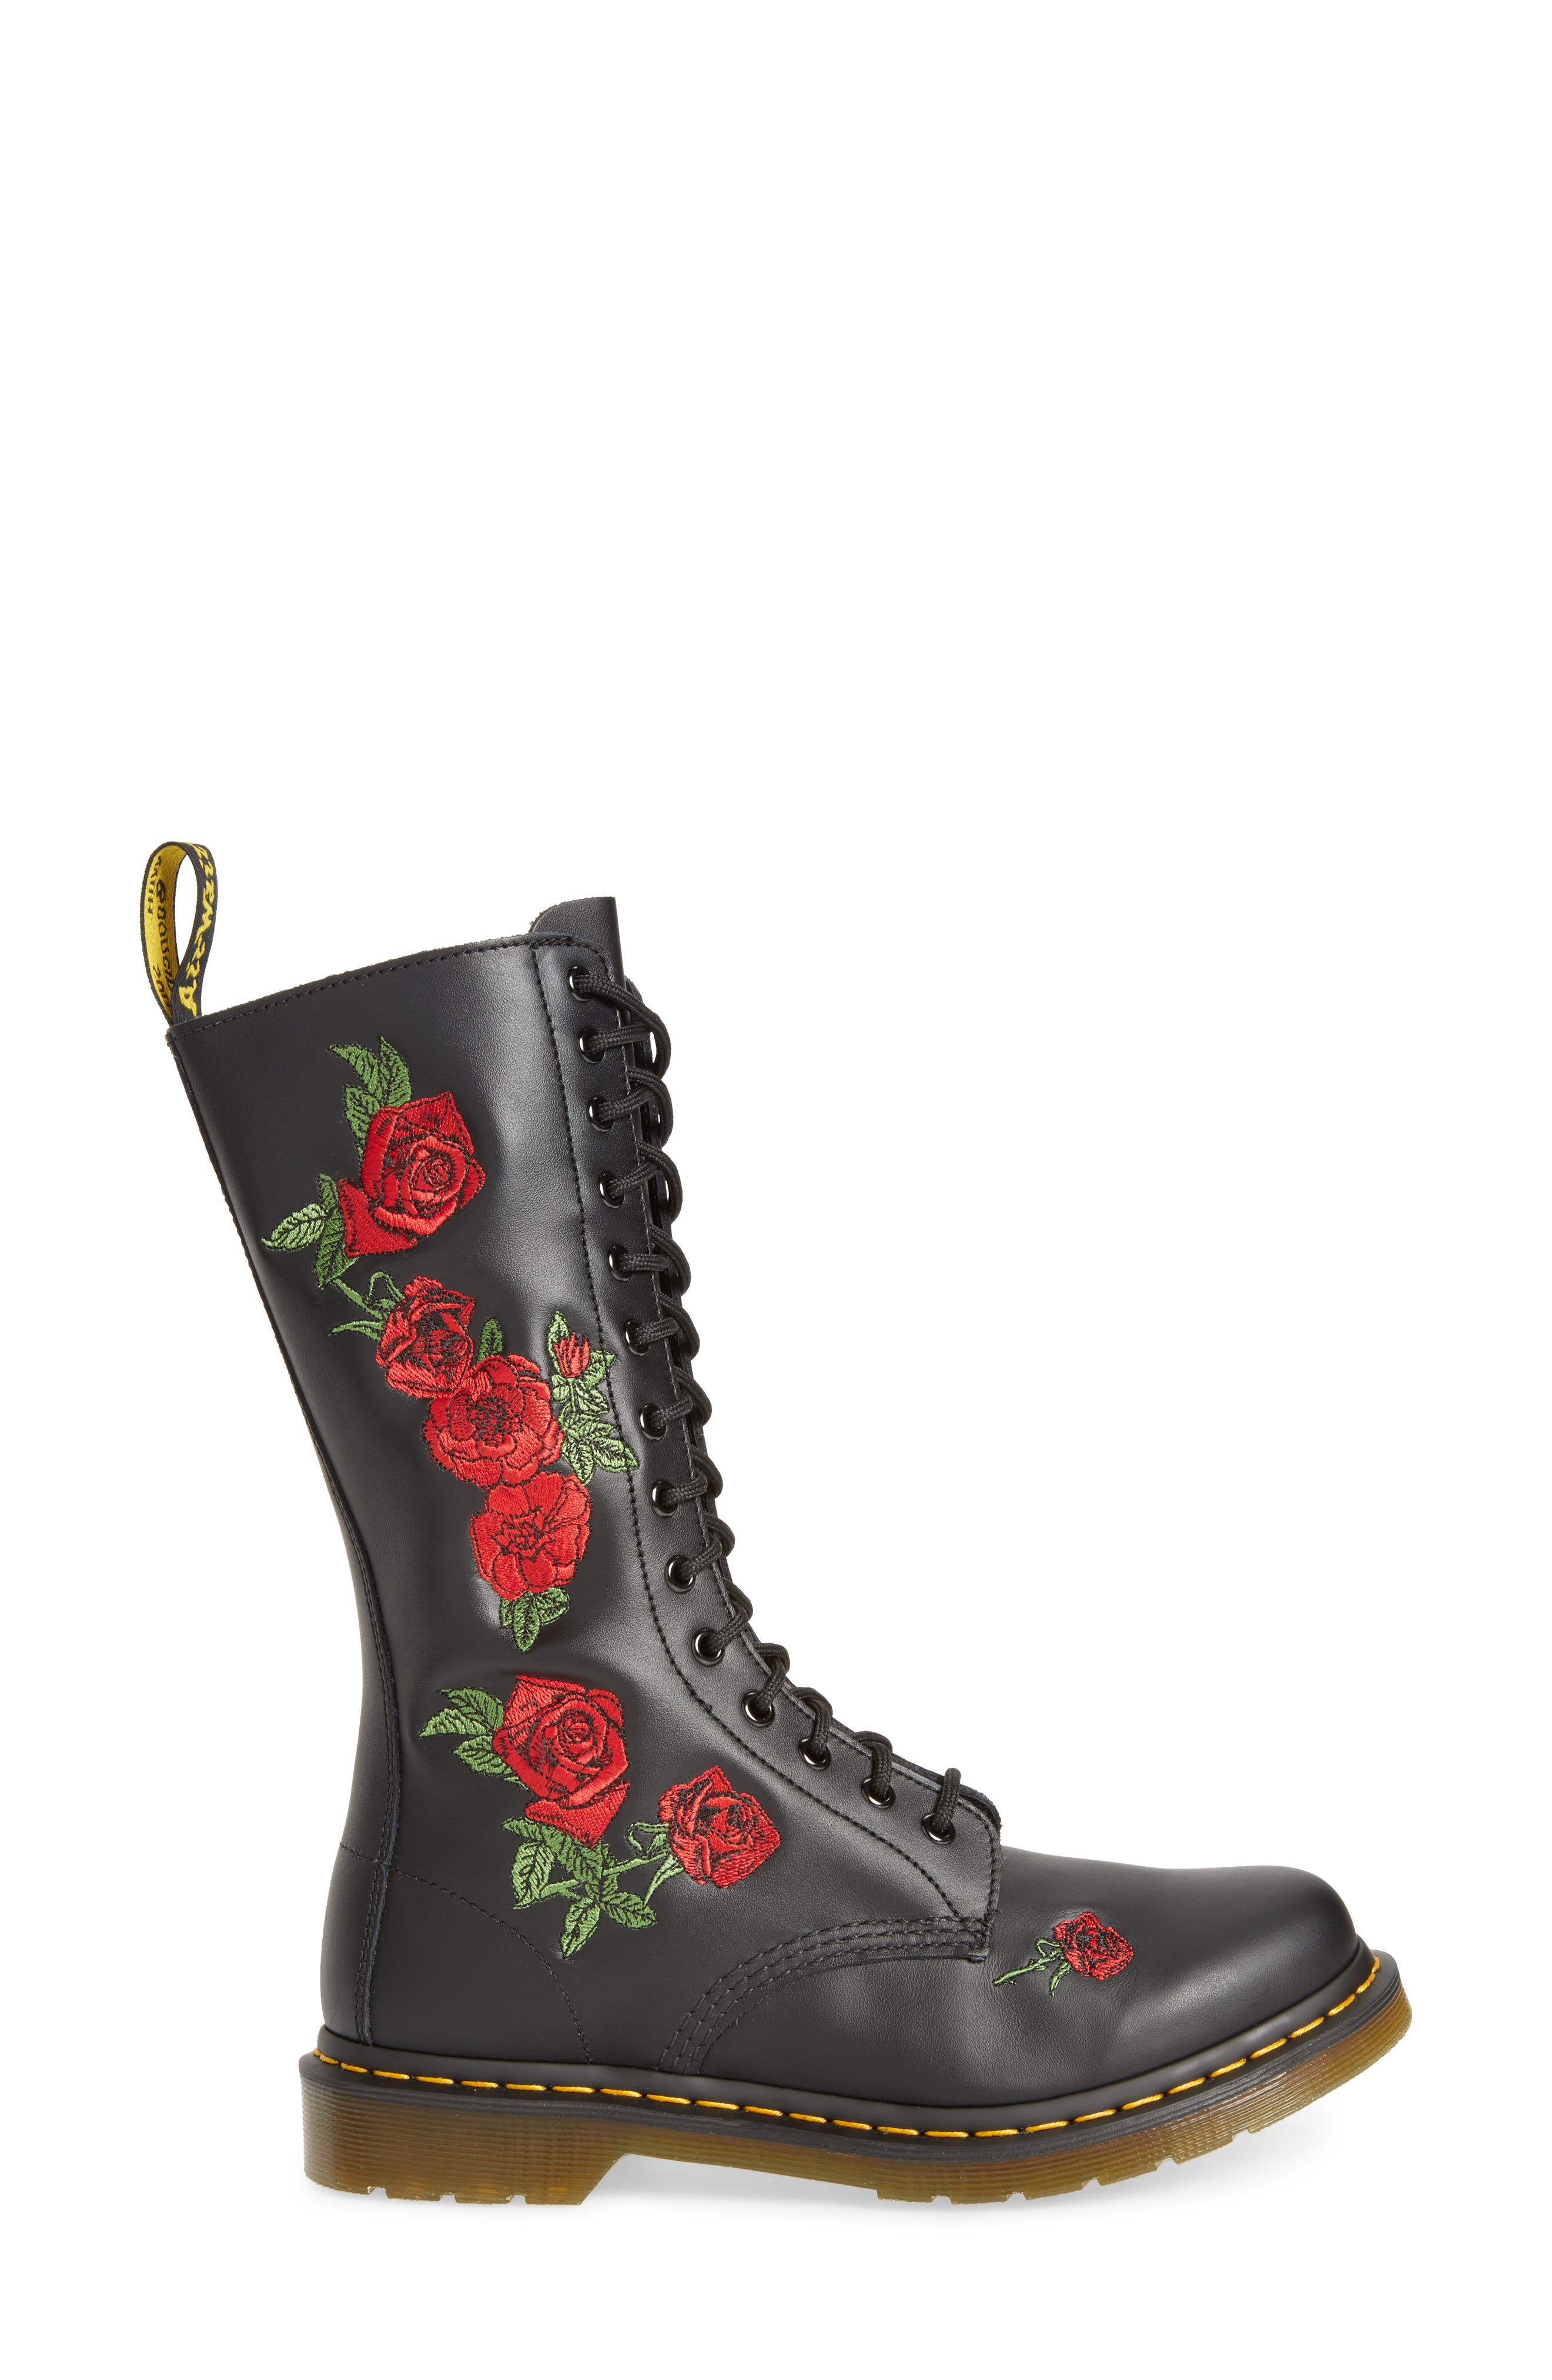 Vonda Lace-Up Boot,                             Alternate thumbnail 3, color,                             Black Softy Embroidery